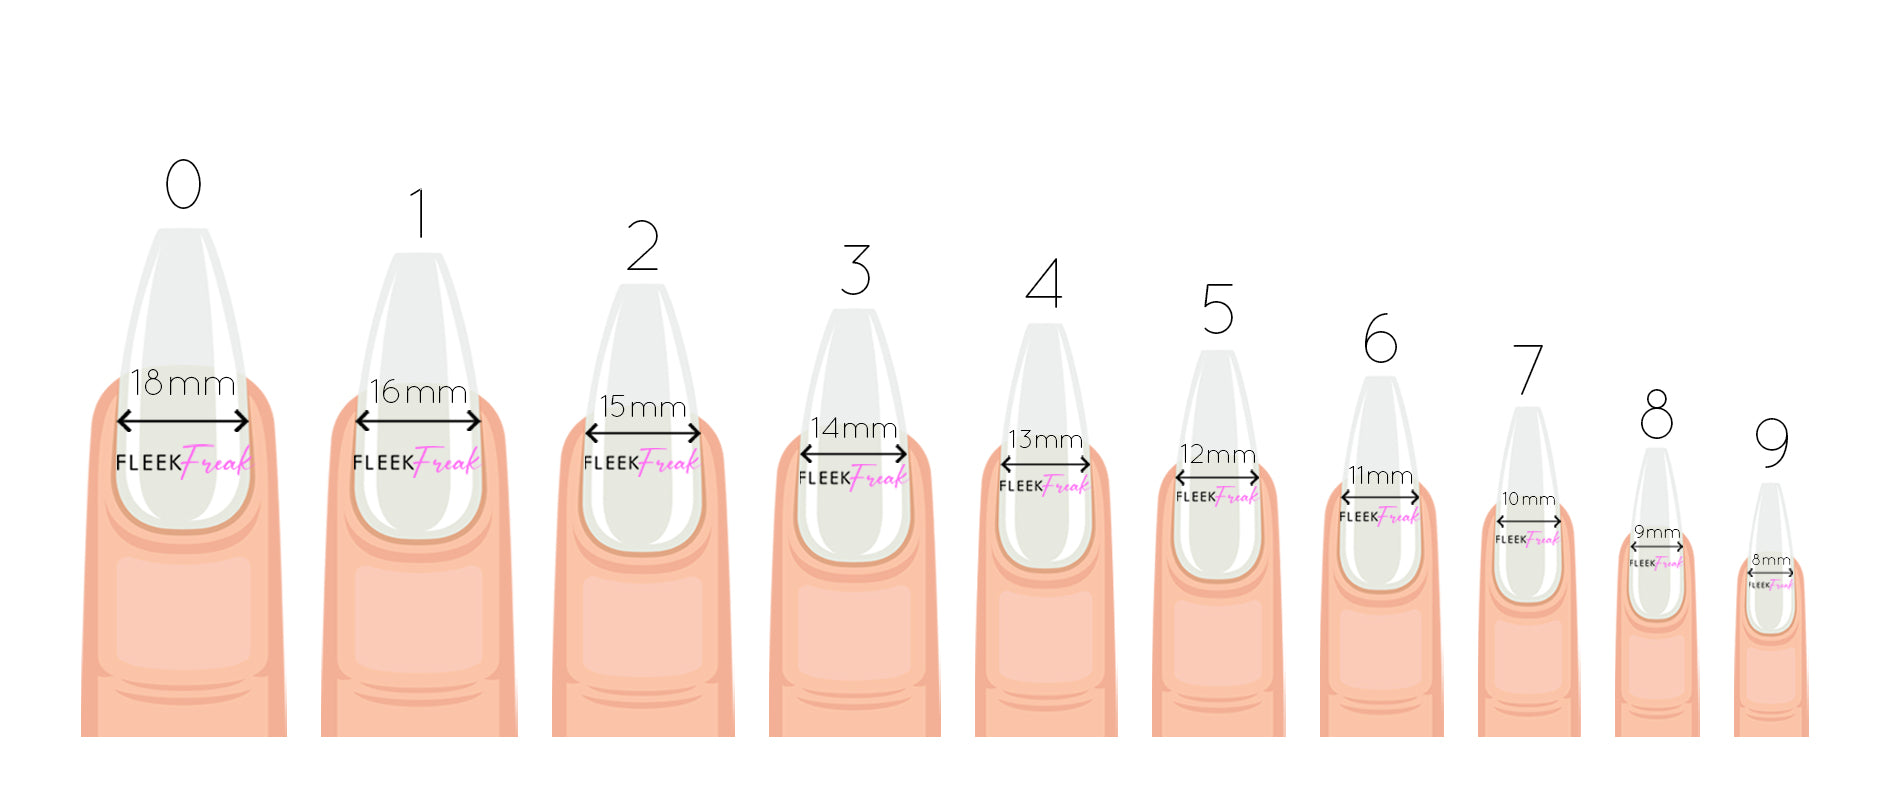 Nail Sizing Chart | Nail Measurements